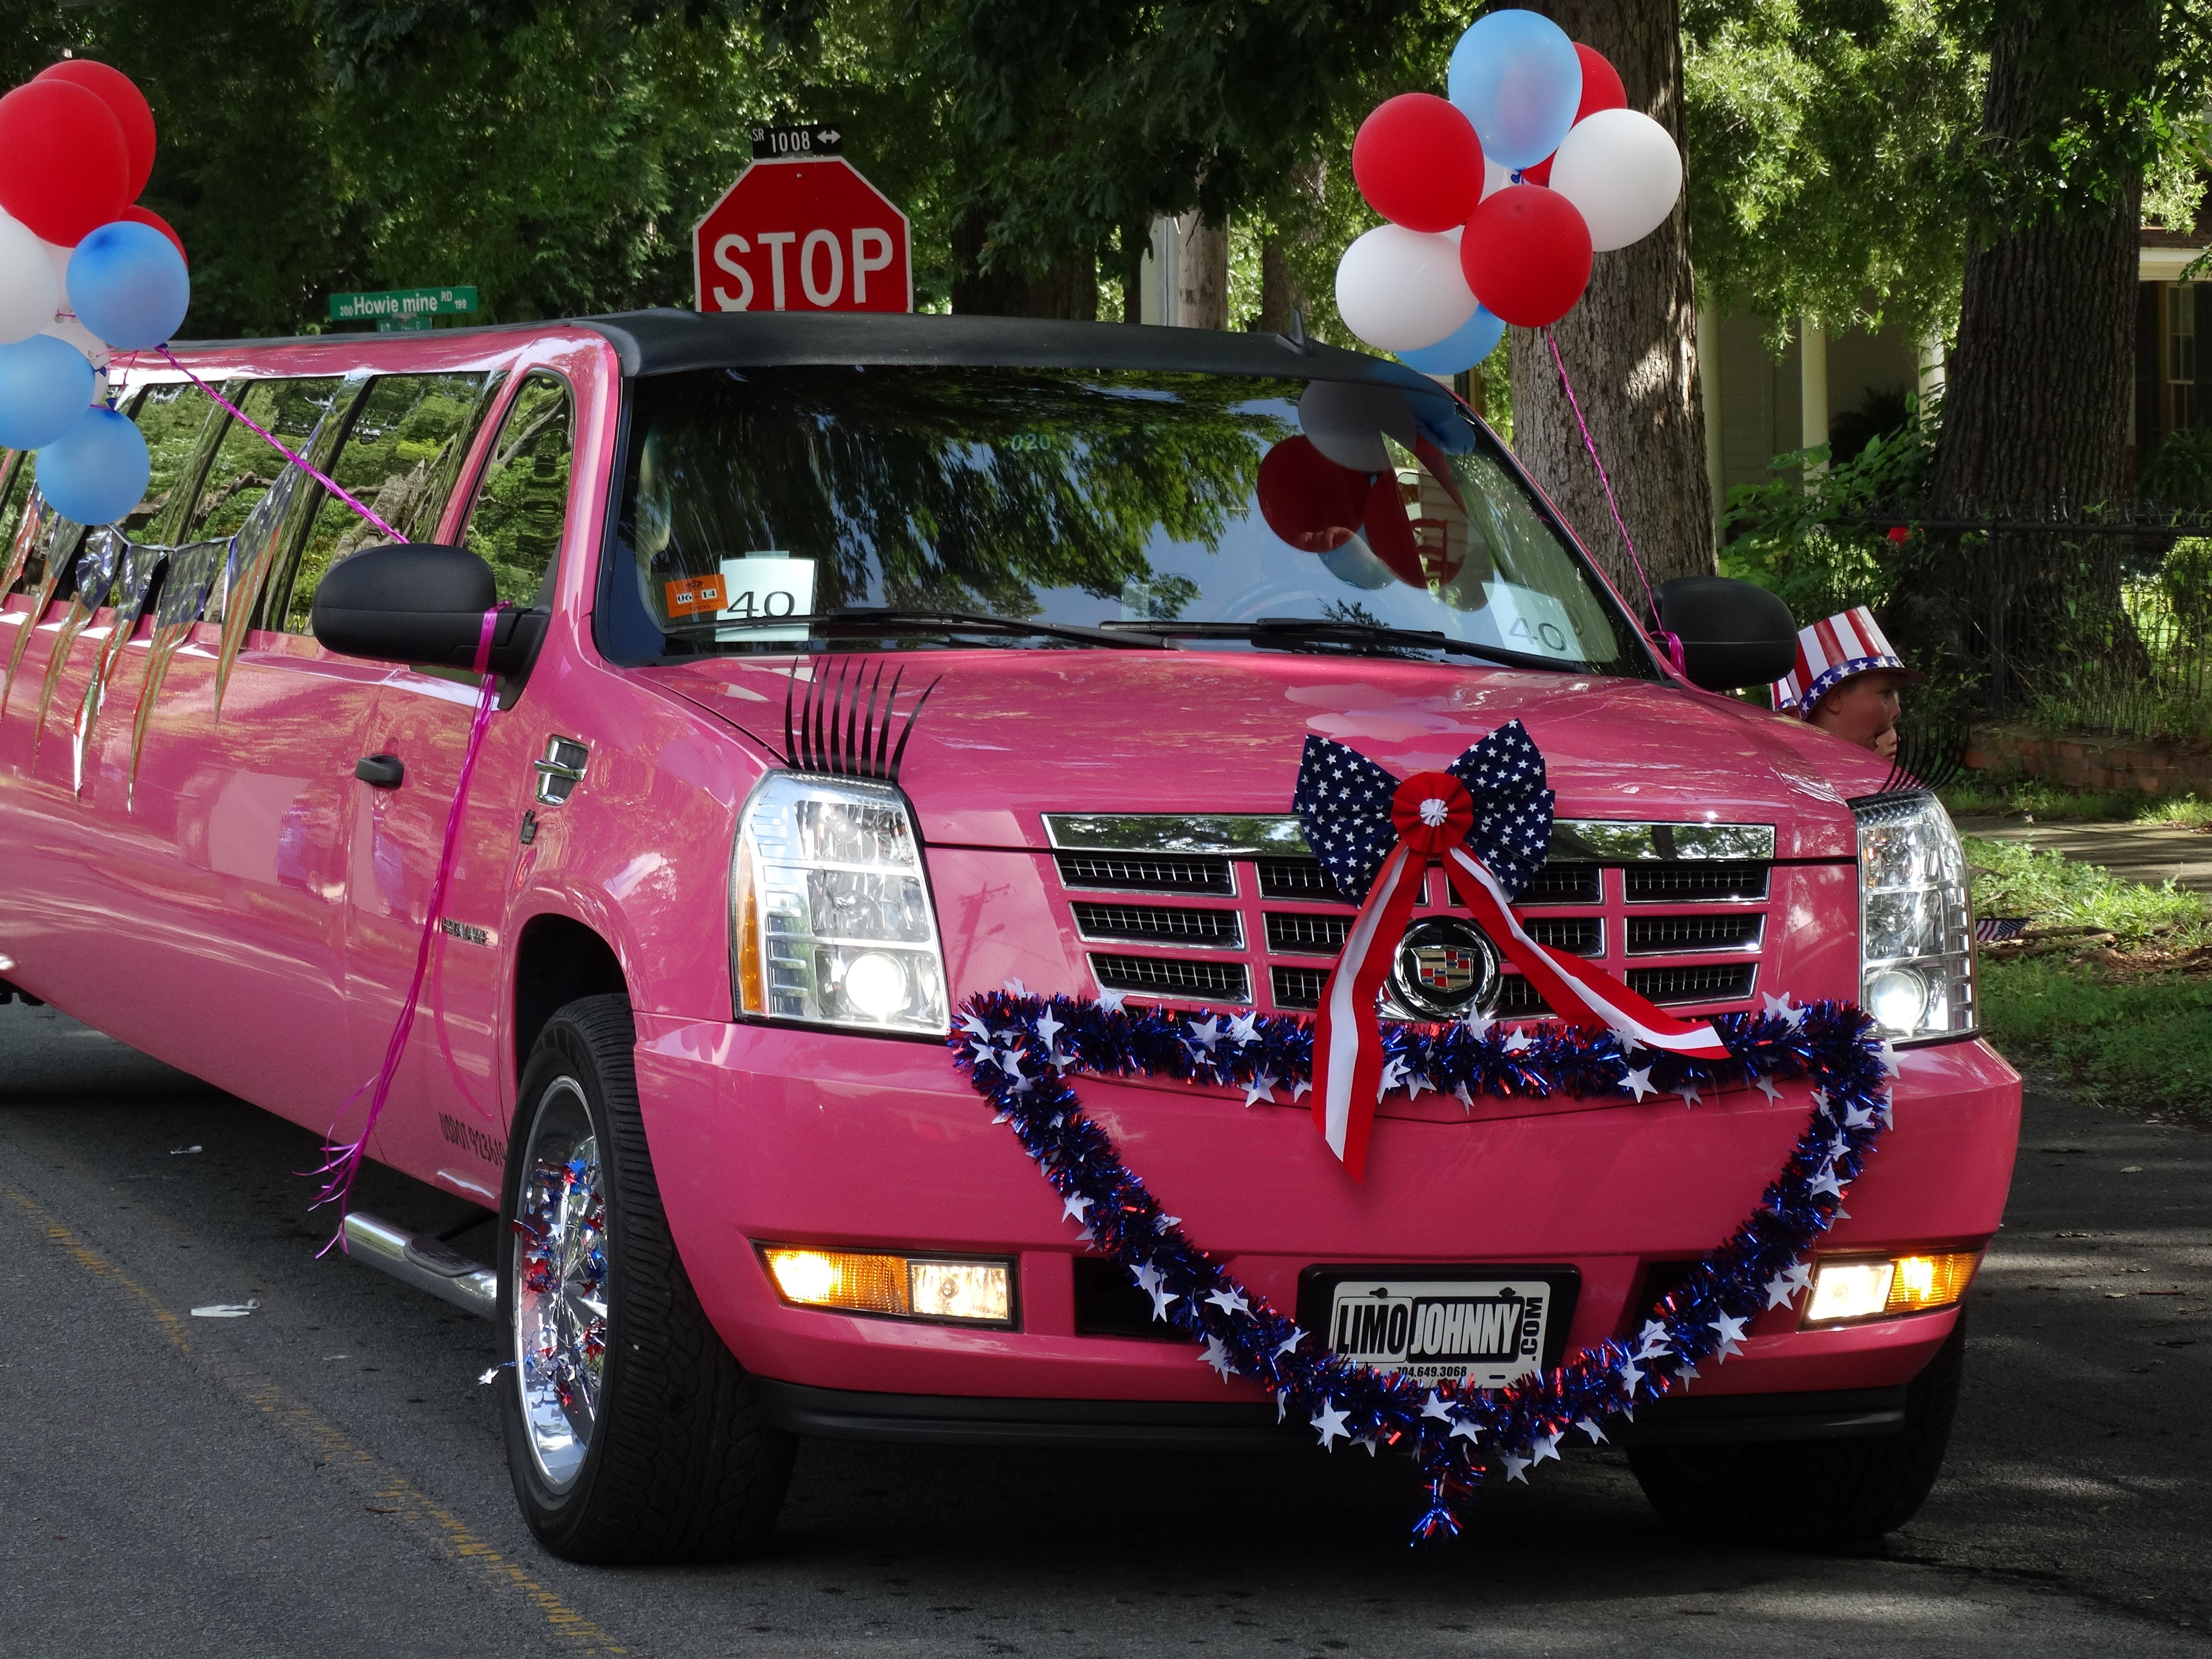 Carolina Luxury Transportation Group pink limousine in the Waxhaw Parade for fourth of July